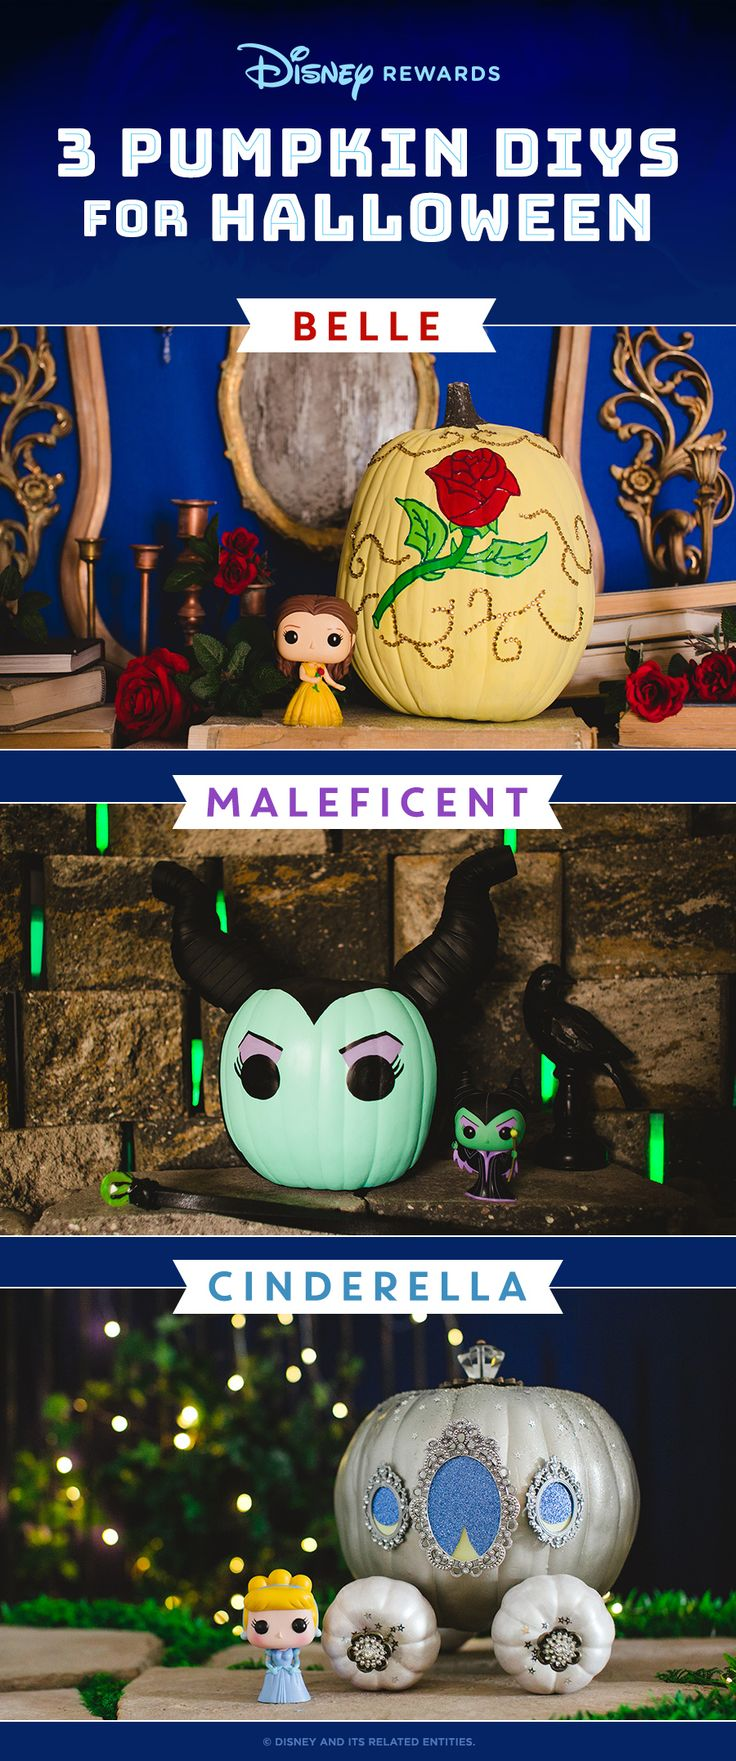 Bring a little Disney to your doorstep this Halloween with our step-by-step guide to pumpkin dress-up. Your little helpers will love these pumpkin painting designs inspired by Belle, Cinderella, and Maleficent. No carving required!